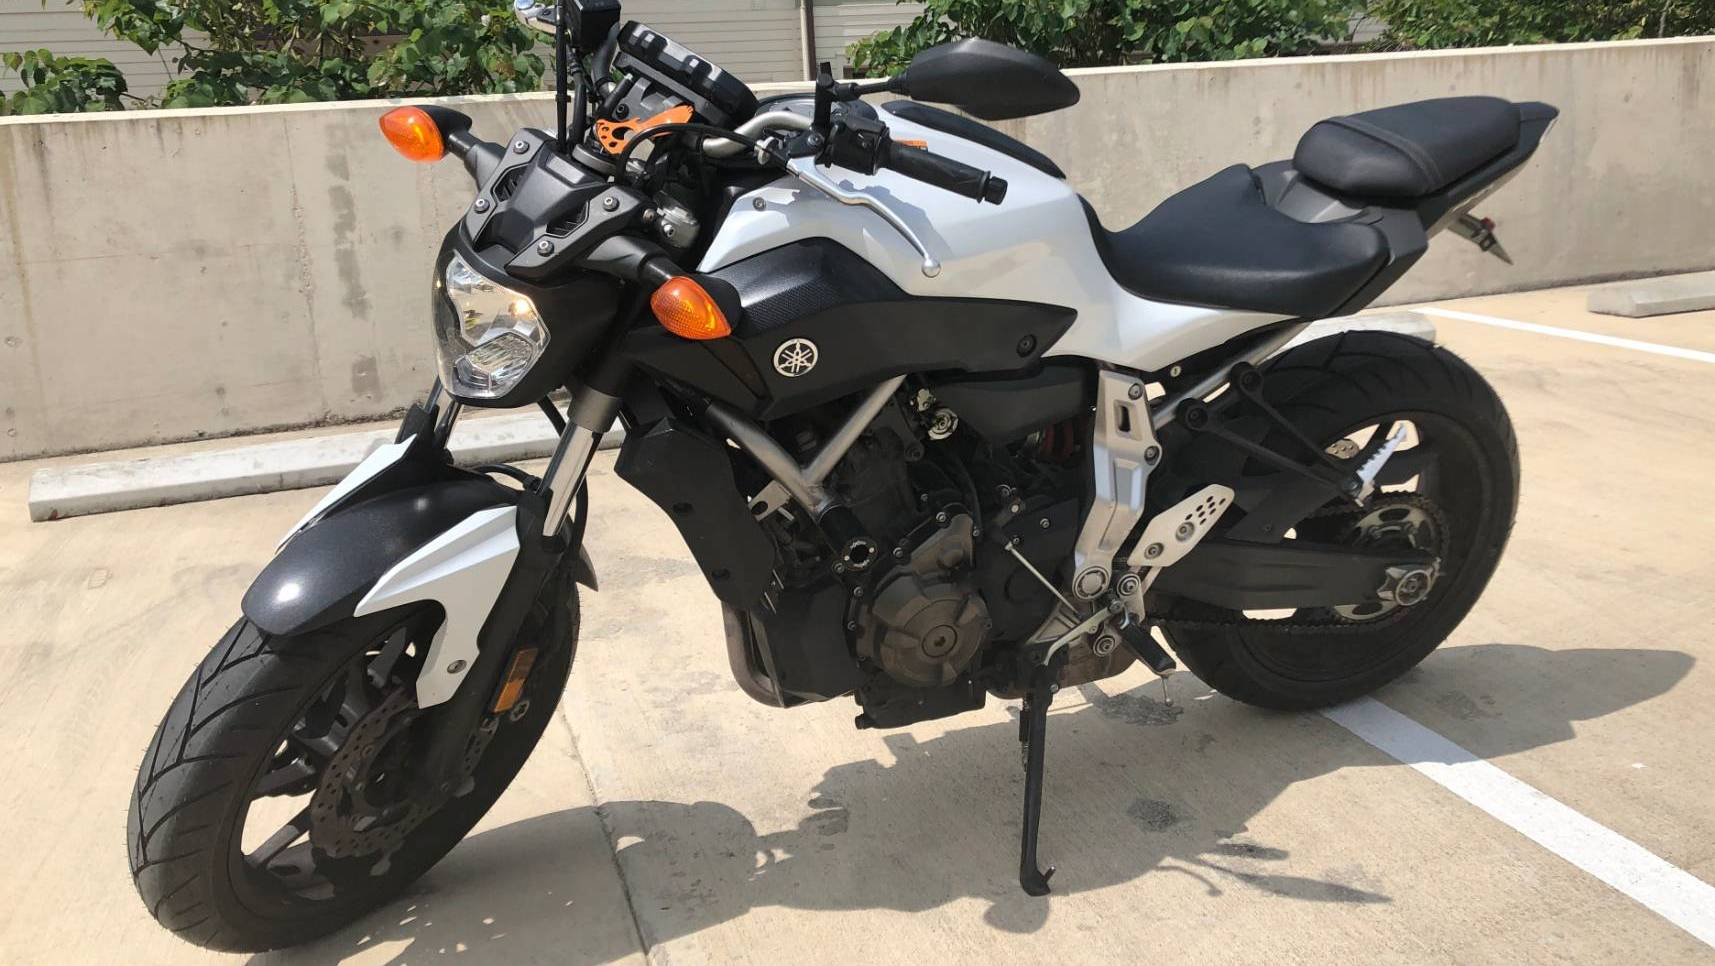 Yamaha Fz 07 For Rent Near Cedar Park Tx Riders Share